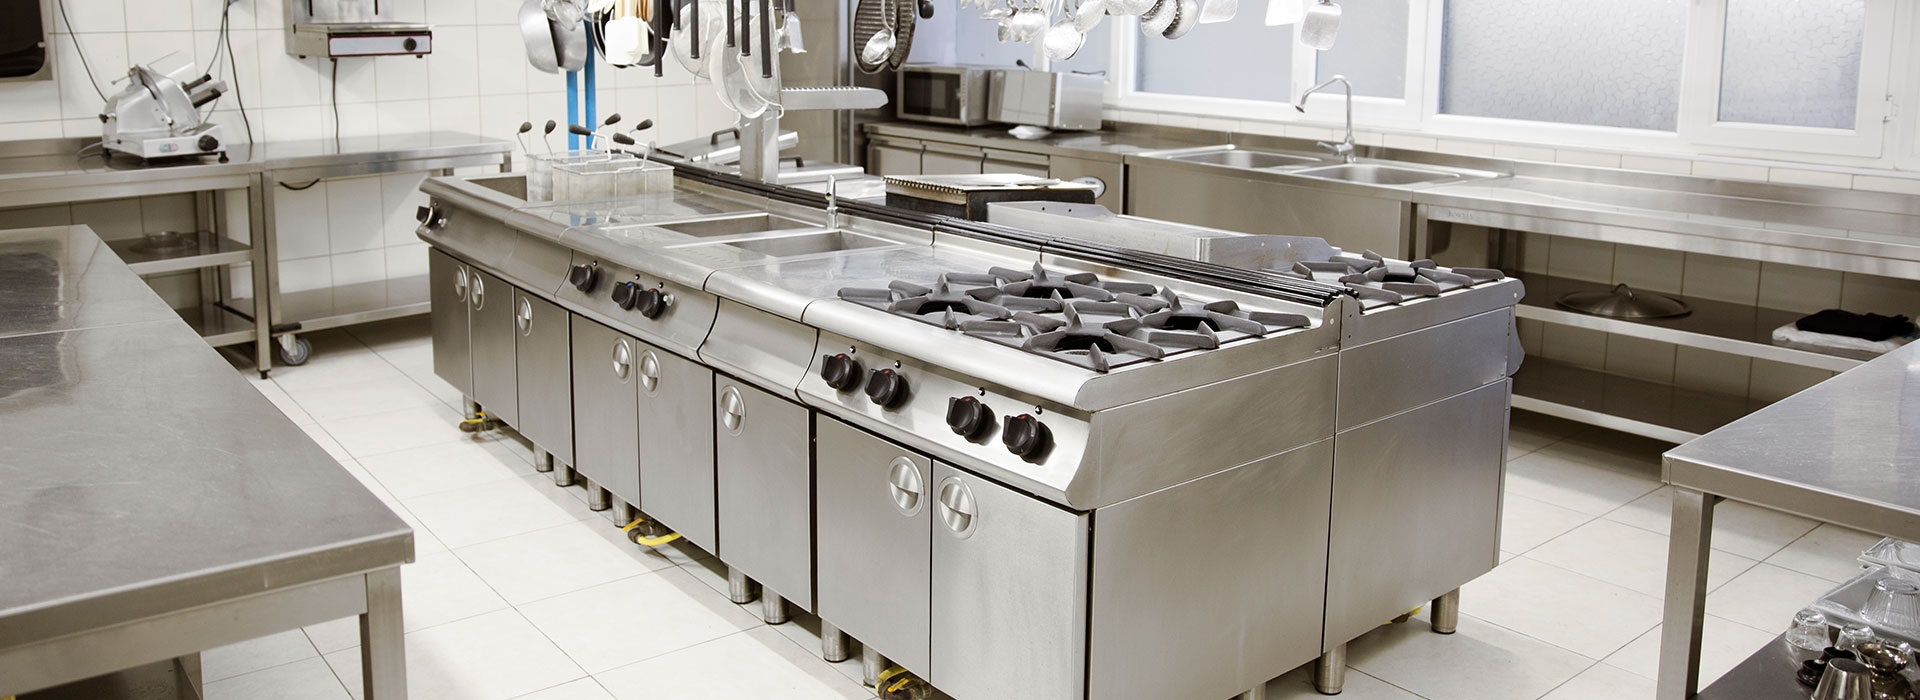 Restaurant Kitchen Equipment Repair how to get the most out of your commercial kitchen equipment | air